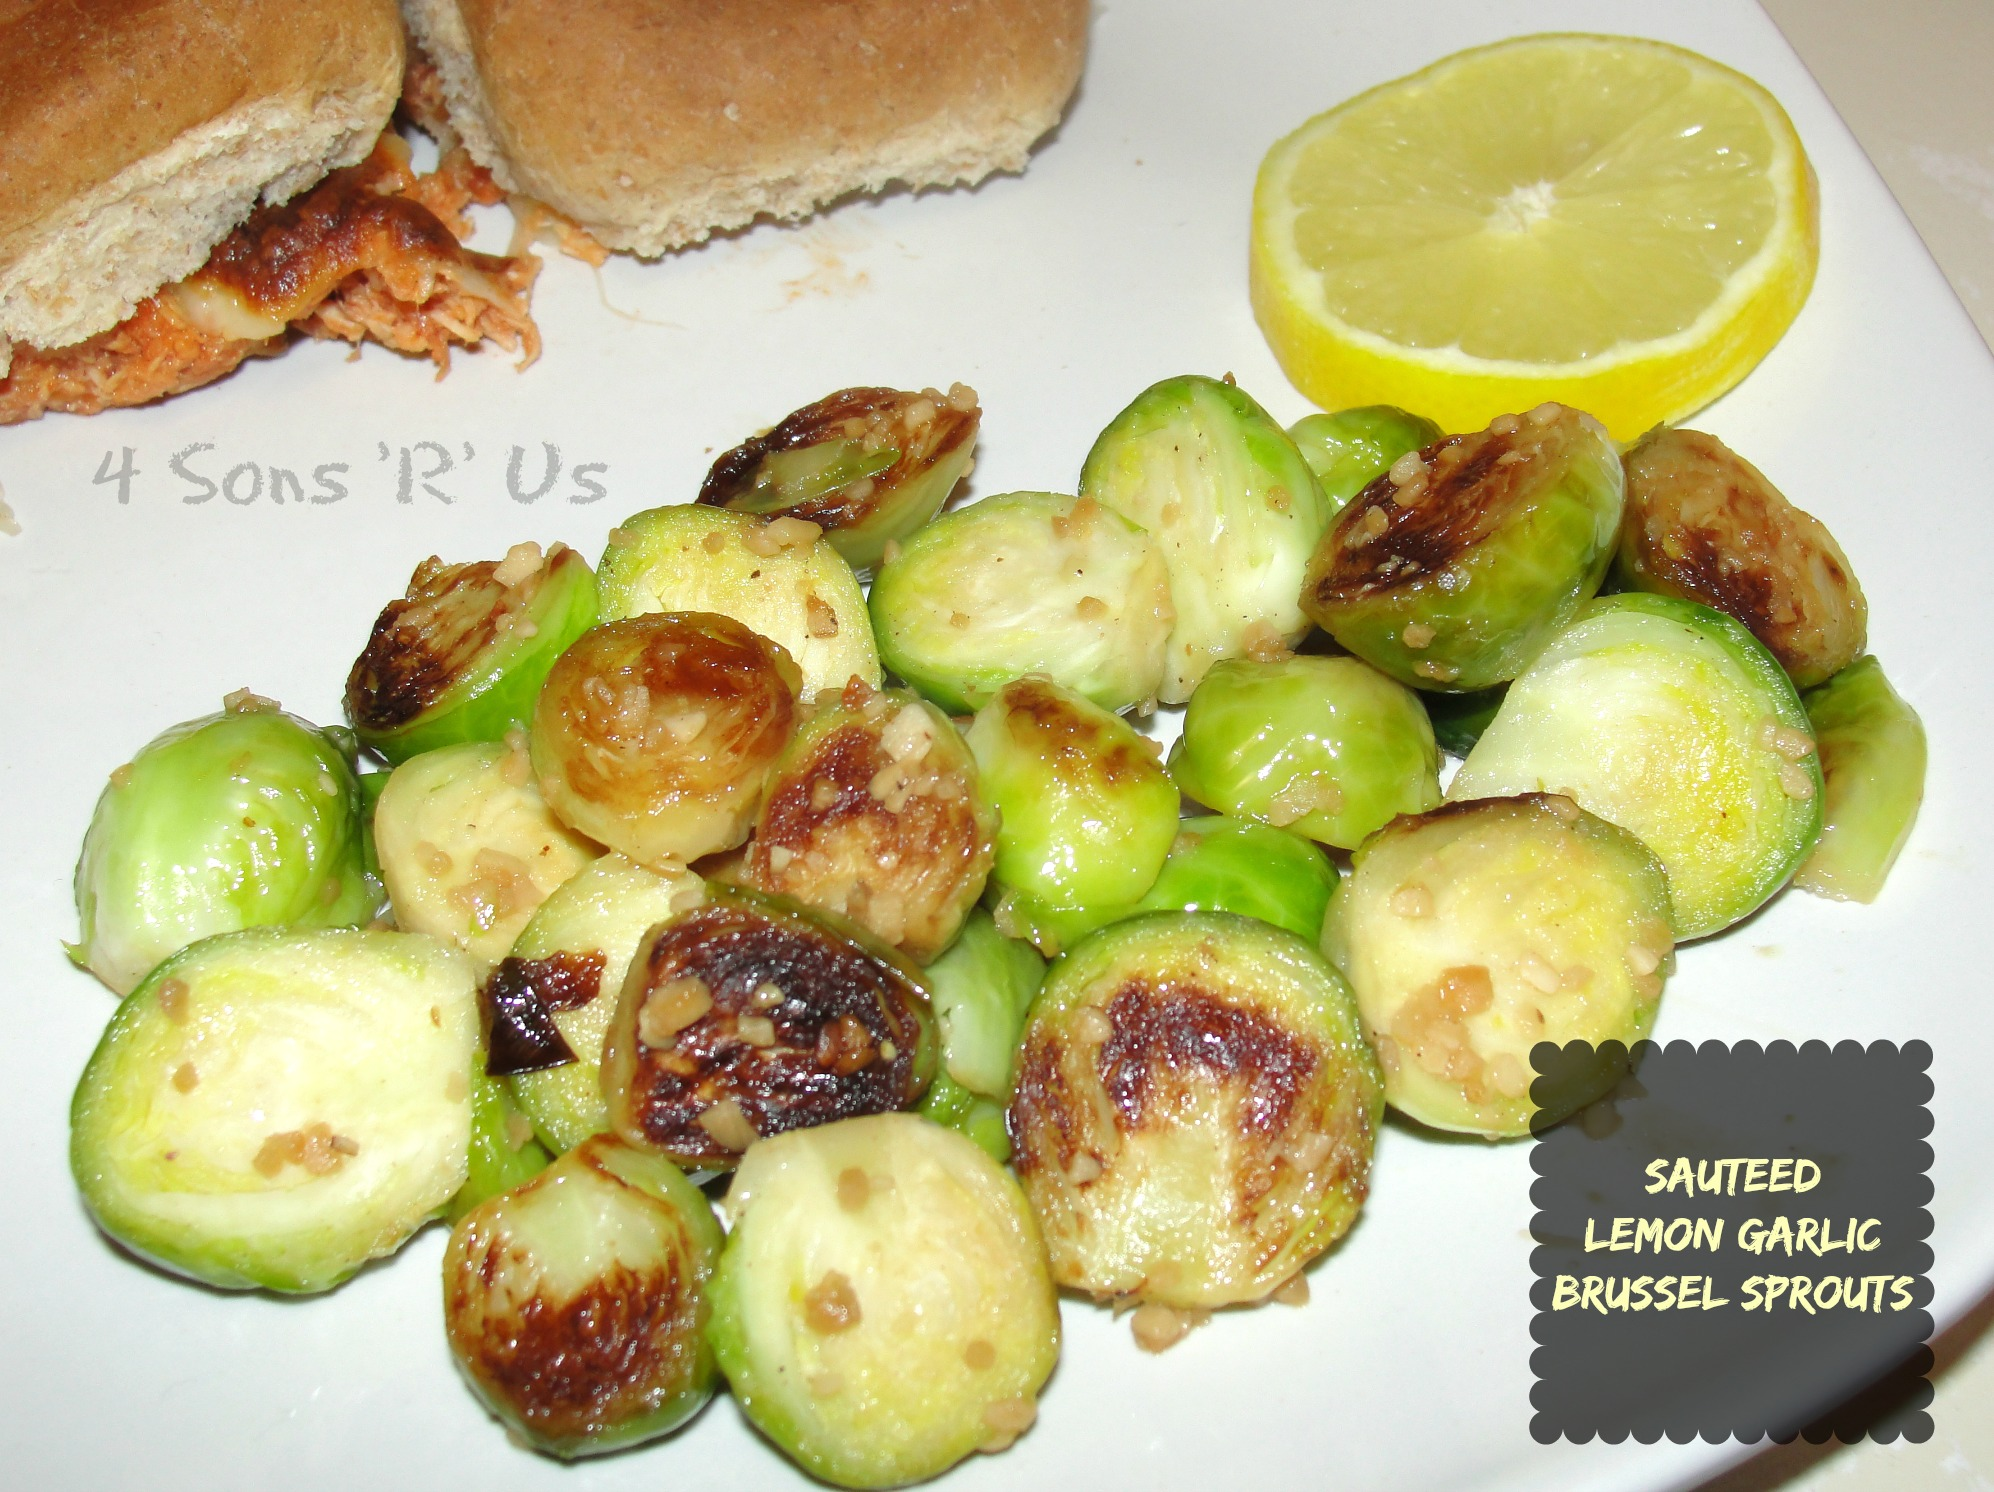 Sauteed Lemon Garlic Brussel Sprouts 4 Sons R Us